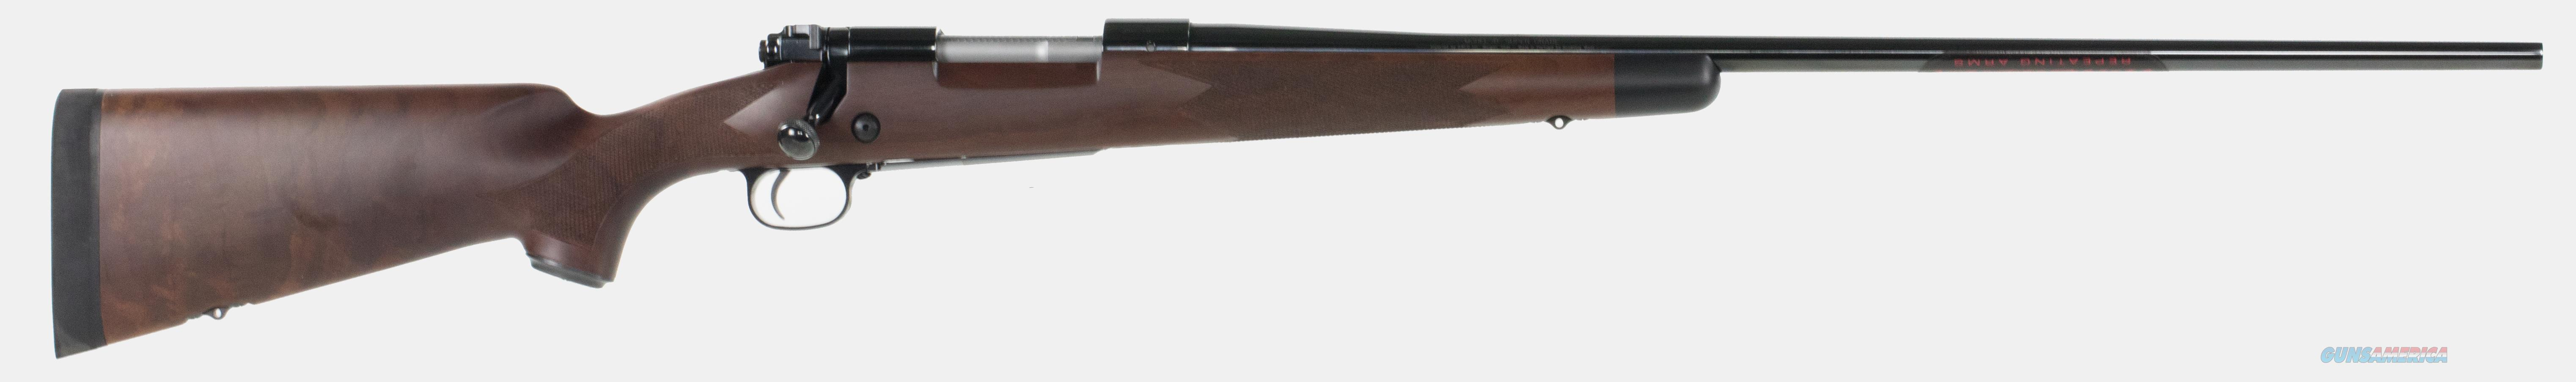 "Winchester Guns 535203236 70 Super Grade Bolt 338 Win Mag 26"" 3+1 Grade IV/V Walnut Stk Blued High  Guns > Rifles > W Misc Rifles"